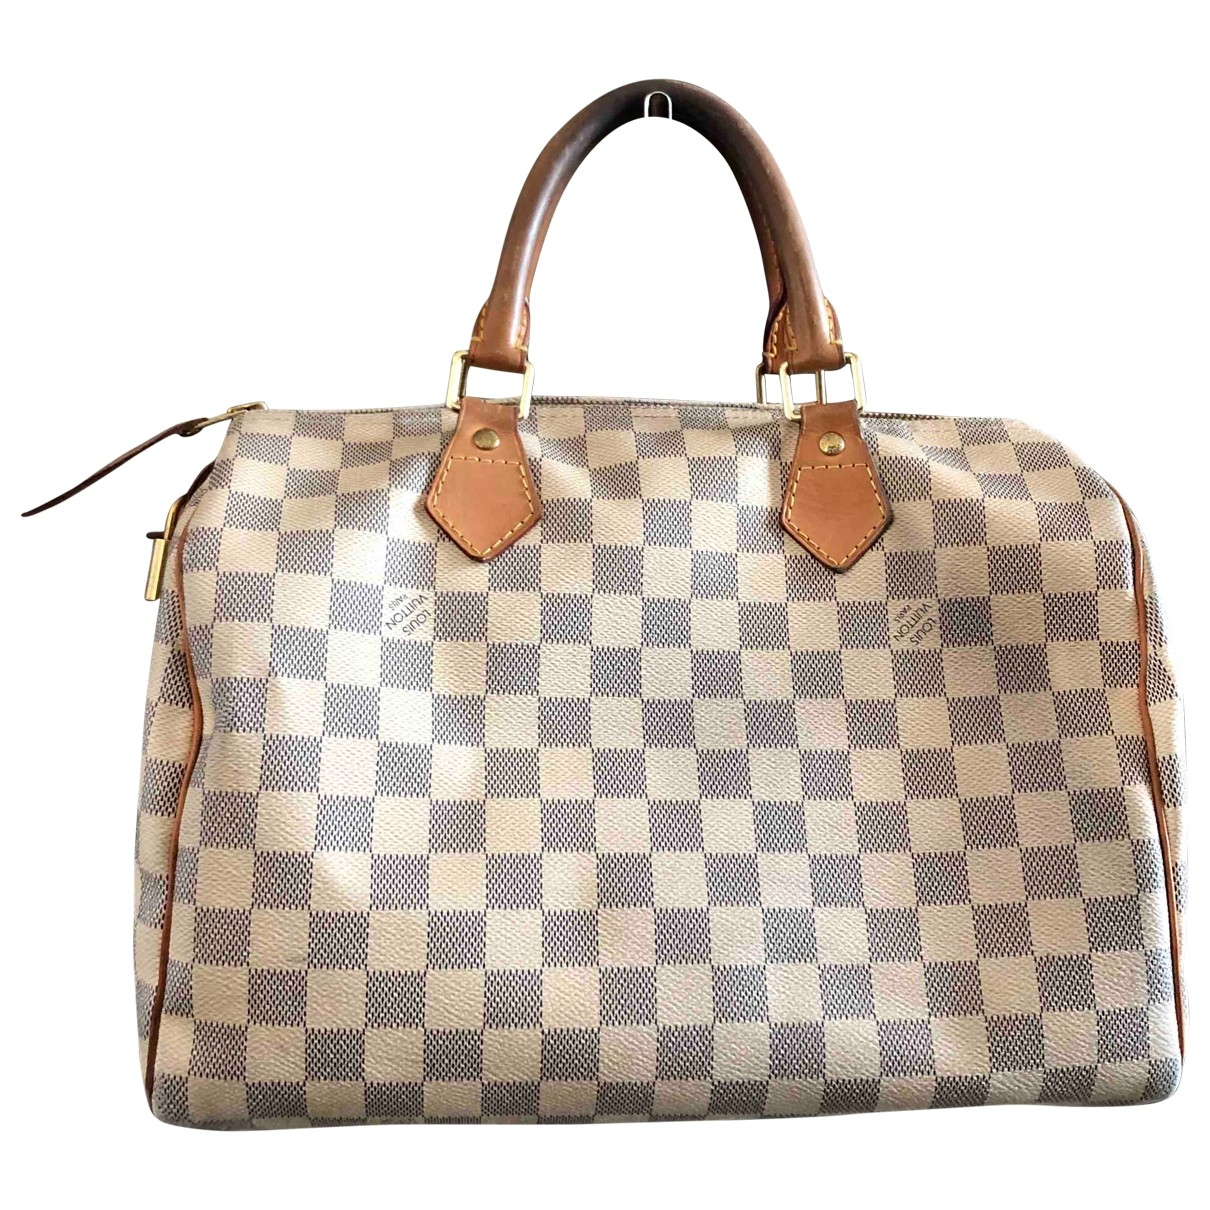 Louis Vuitton Speedy Handtasche in  Beige Leinen